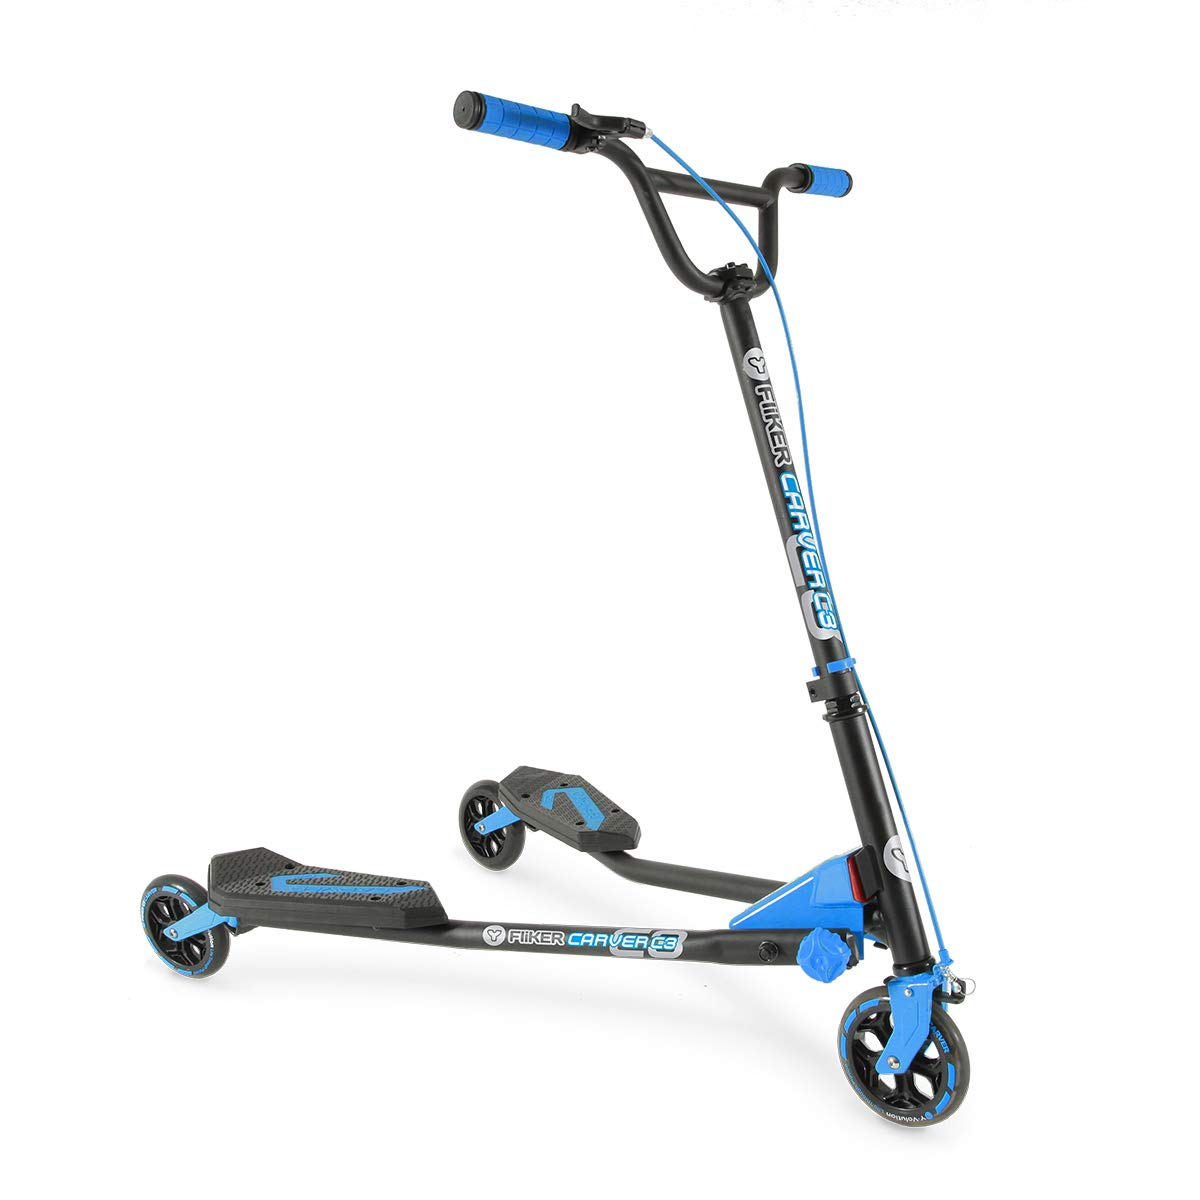 Yvolution Y Fliker C3 Scooter, Blue, One Size by Yvolution